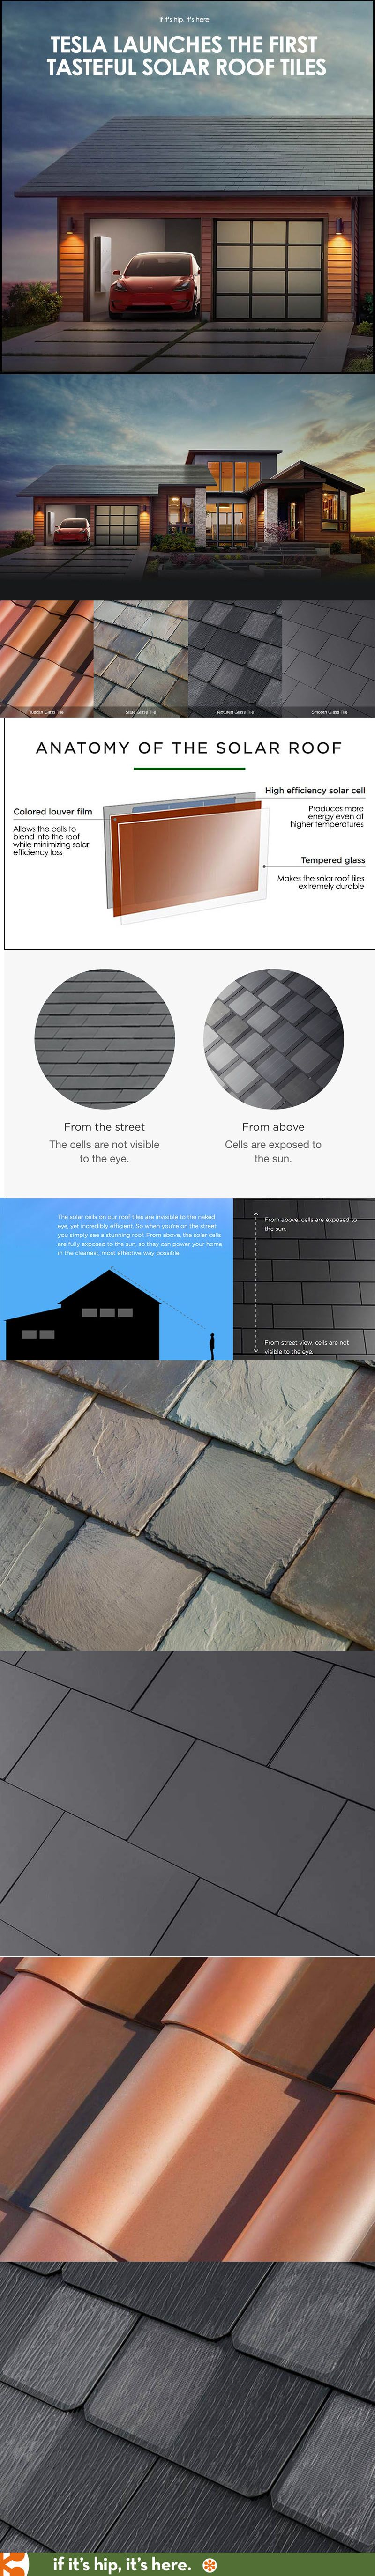 Finally Good Looking Solar Roofing Learn All About It At Http Www Ifitshipitshere Com Tesla Solar Roof Tiles Solar Roof Tiles Solar Roof Best Solar Panels